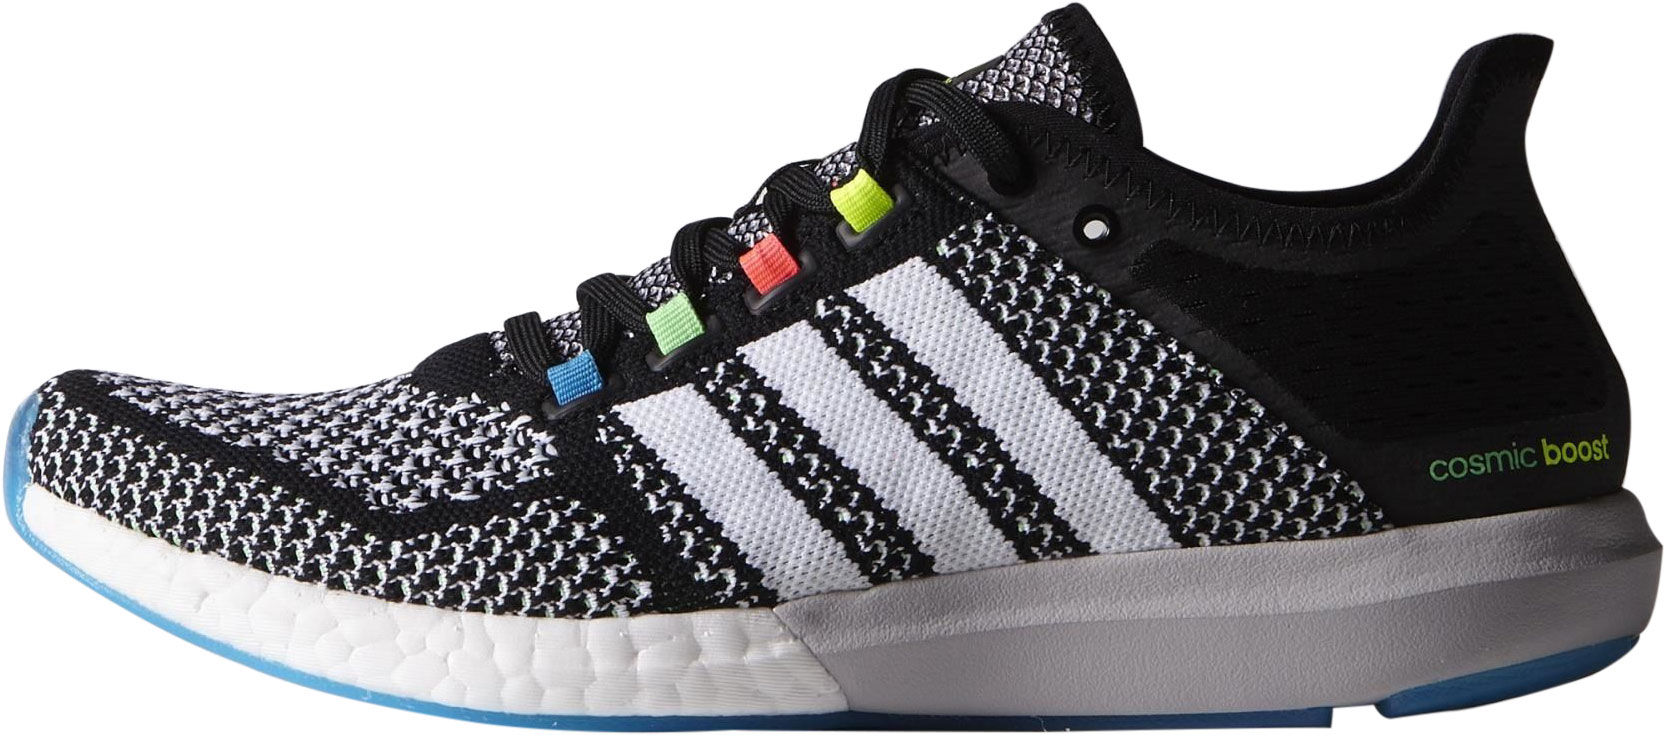 adidas cosmic boost sale